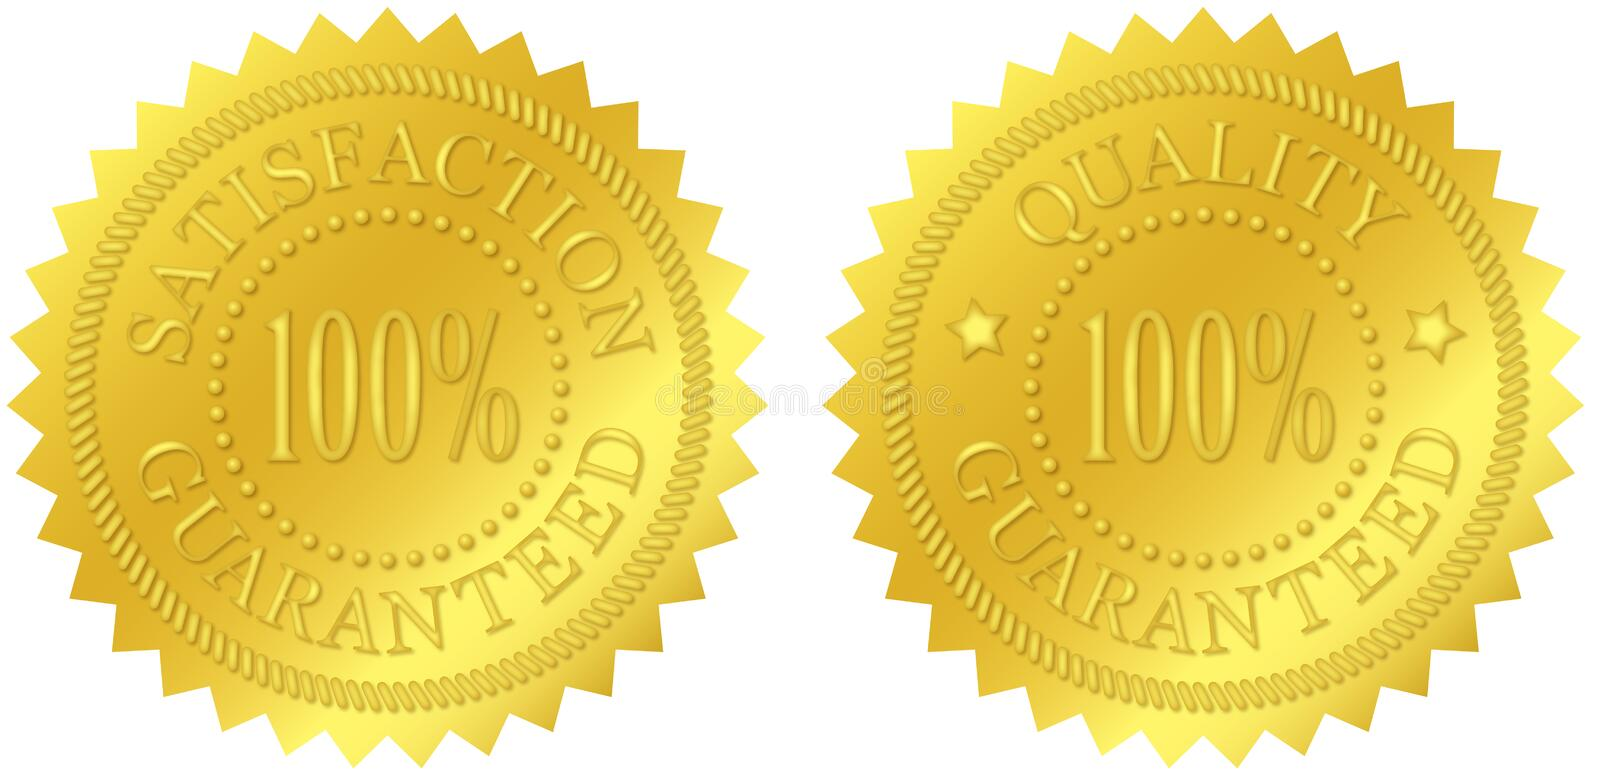 Download Satisfaction And Quality Guaranteed Gold Seals Stock Image - Image: 34751185